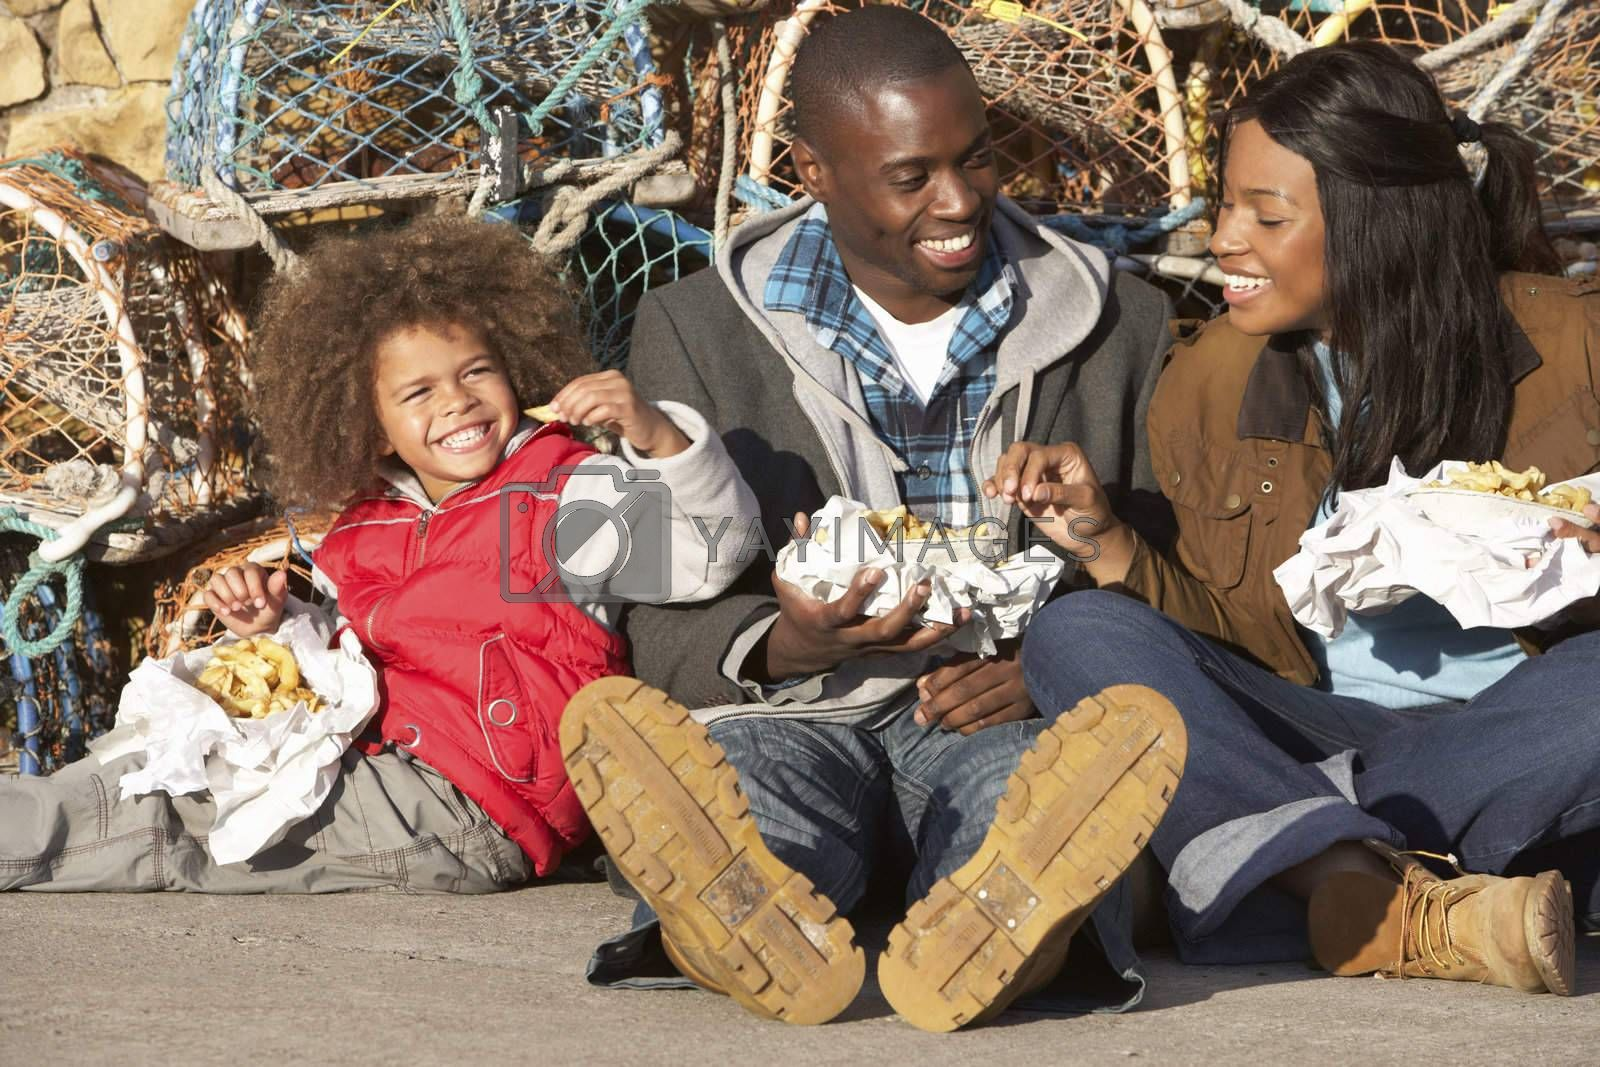 Royalty free image of Happy family having picnic by omg_images